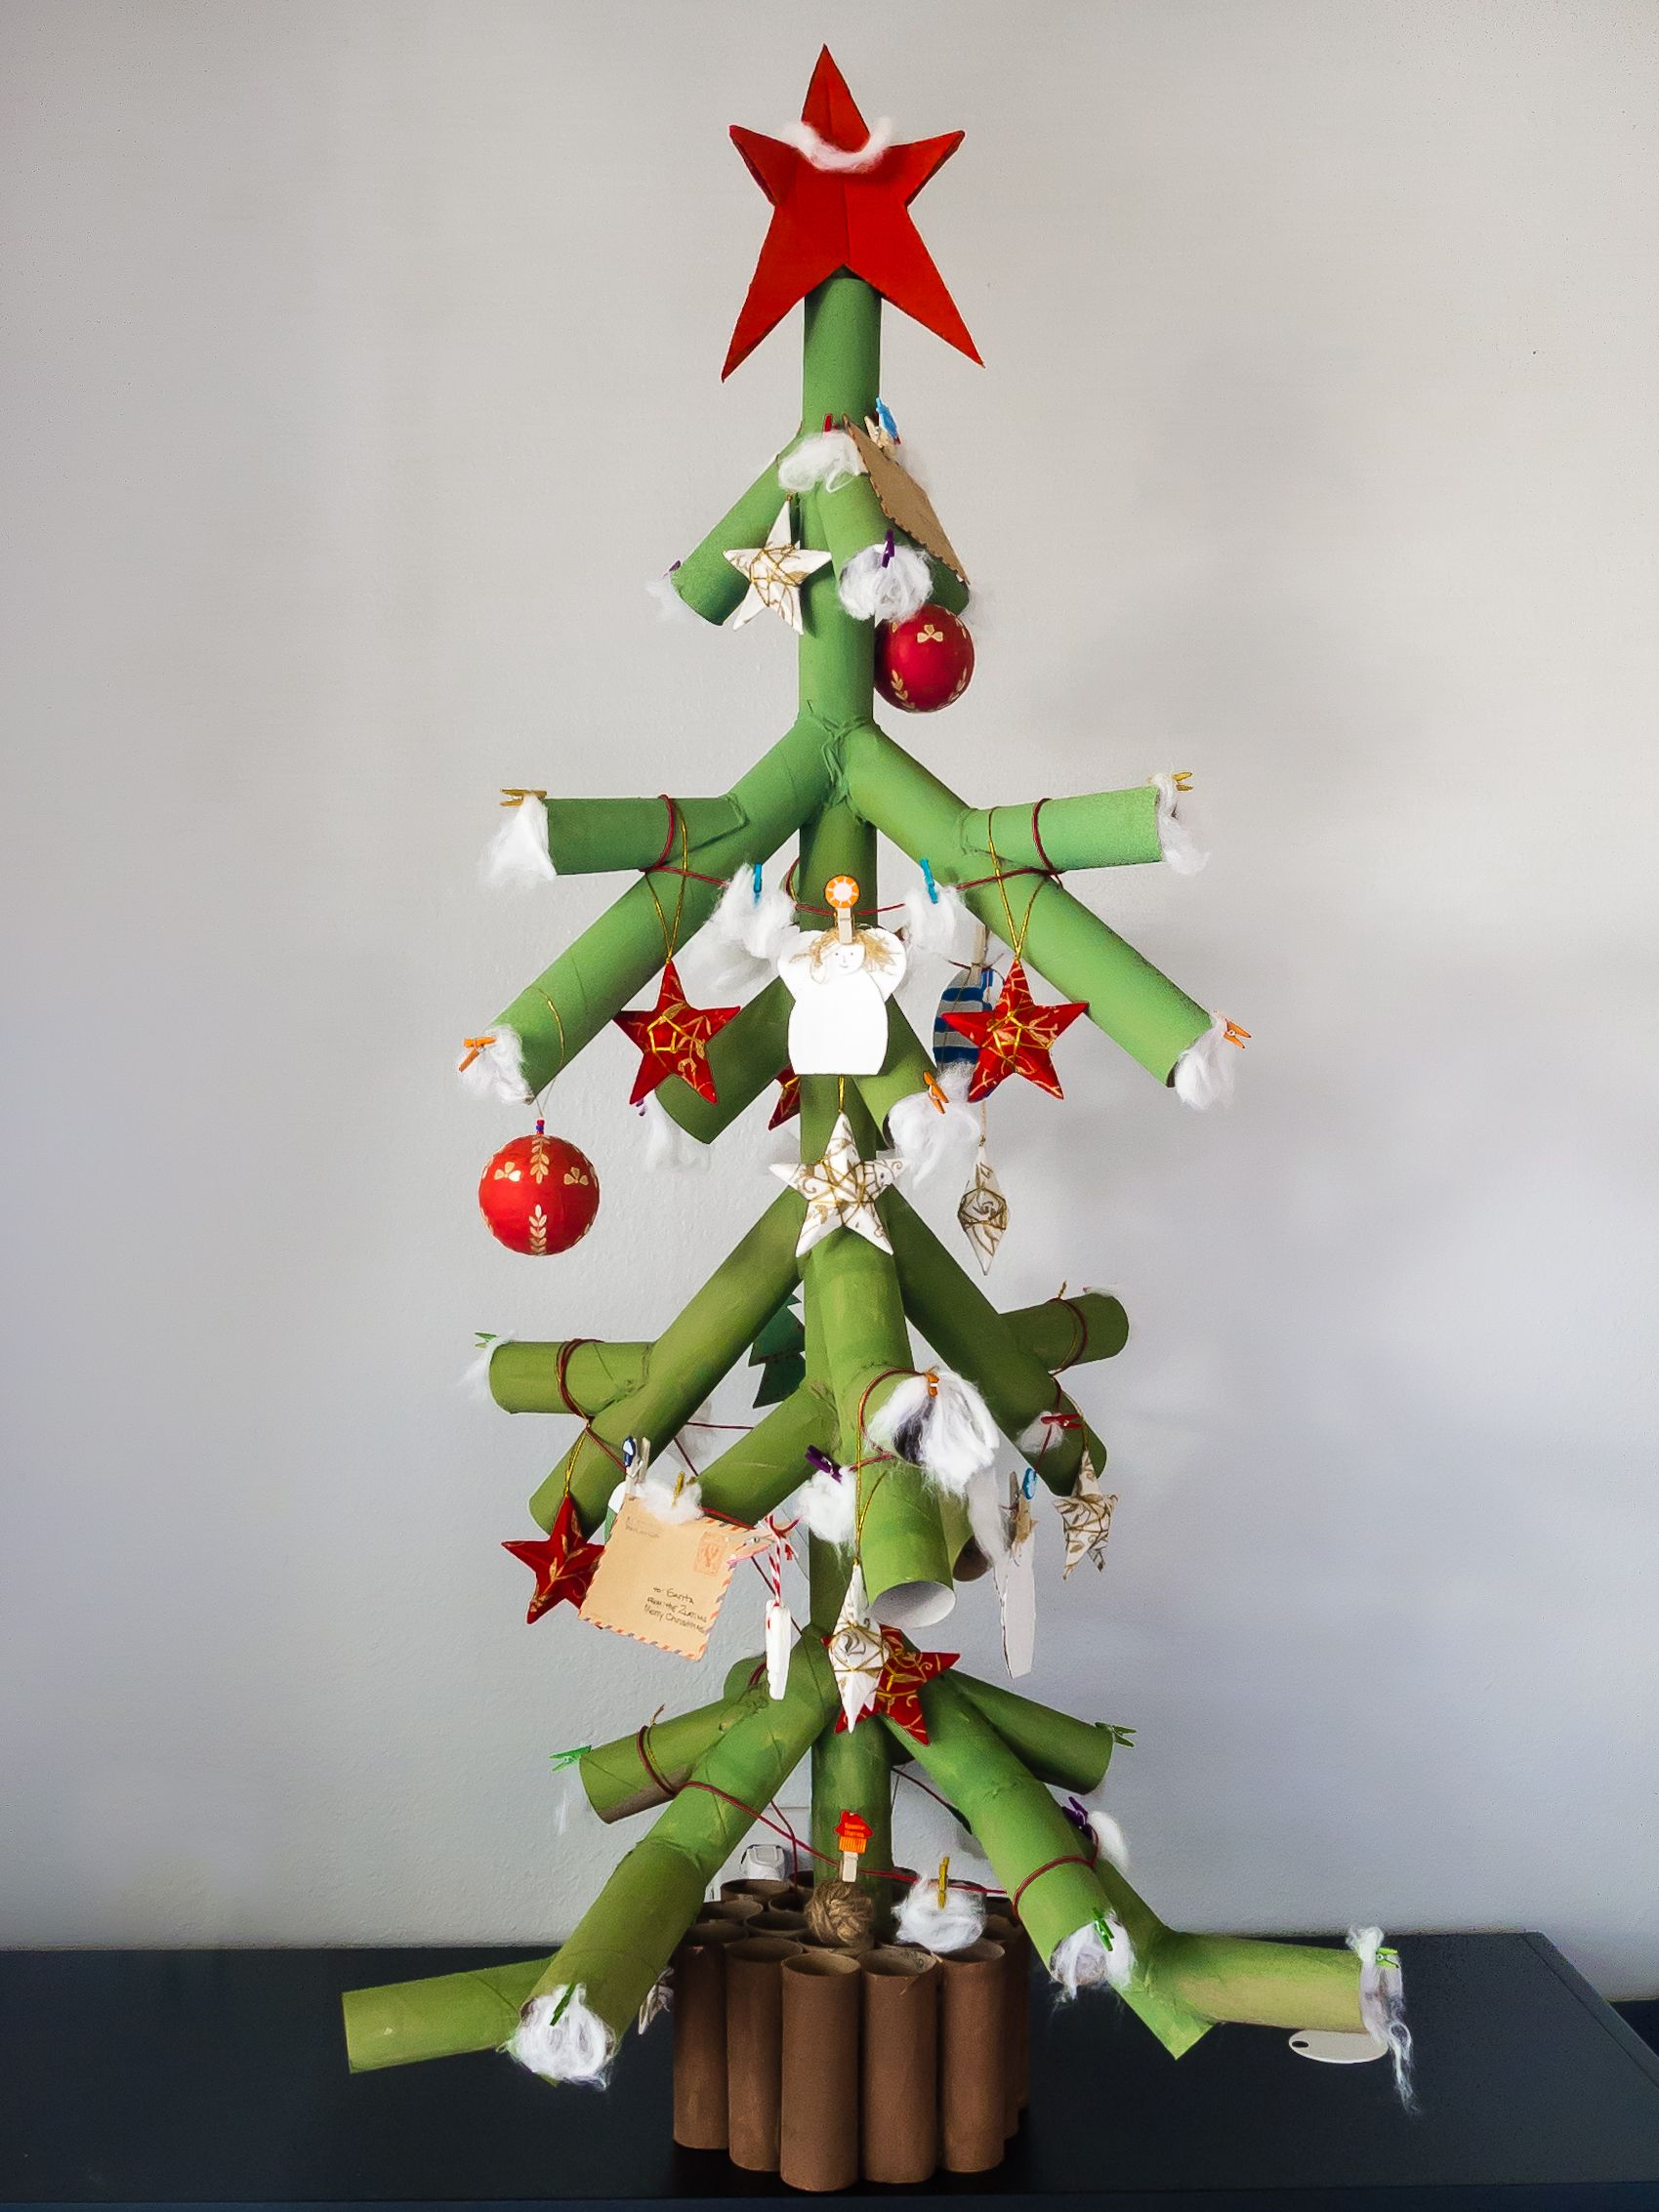 Diy Craft Toilet Paper Rolls Christmas Tree Made Out Of Toilet Paper Rolls Xmas Crafts Christmas Crafts Paper Decorations Diy